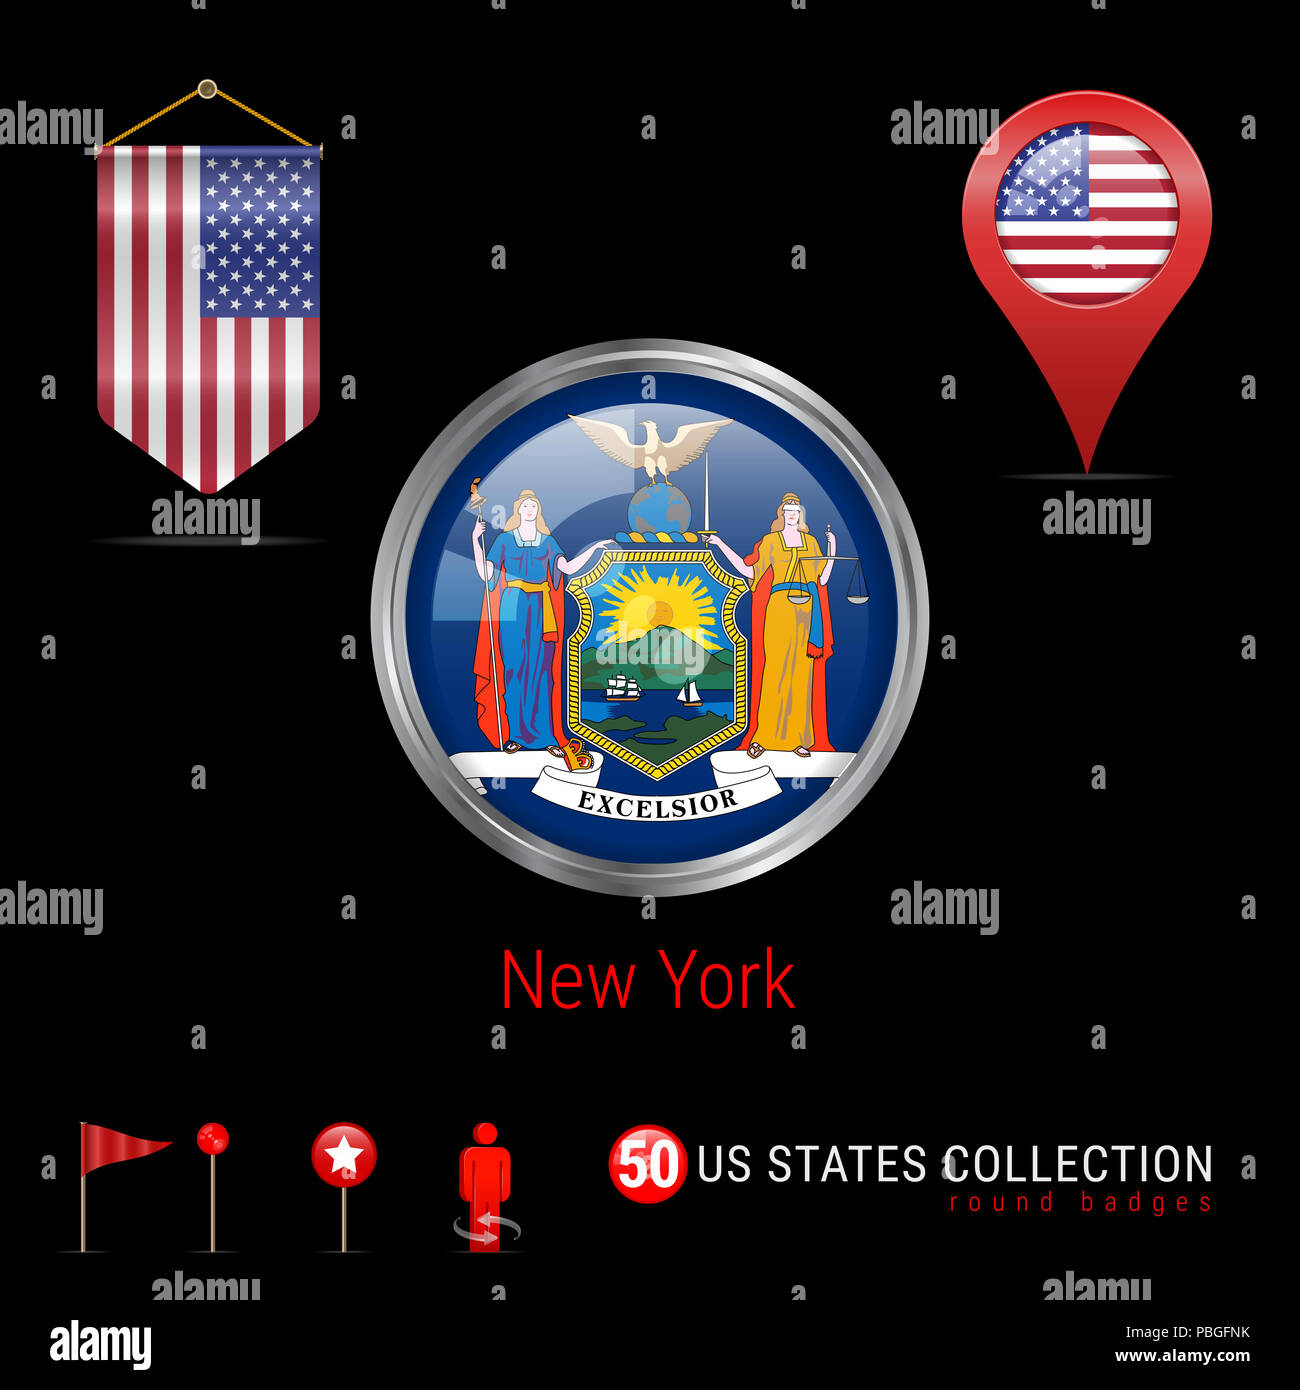 New York State Map Stock Photos & New York State Map Stock Images ...